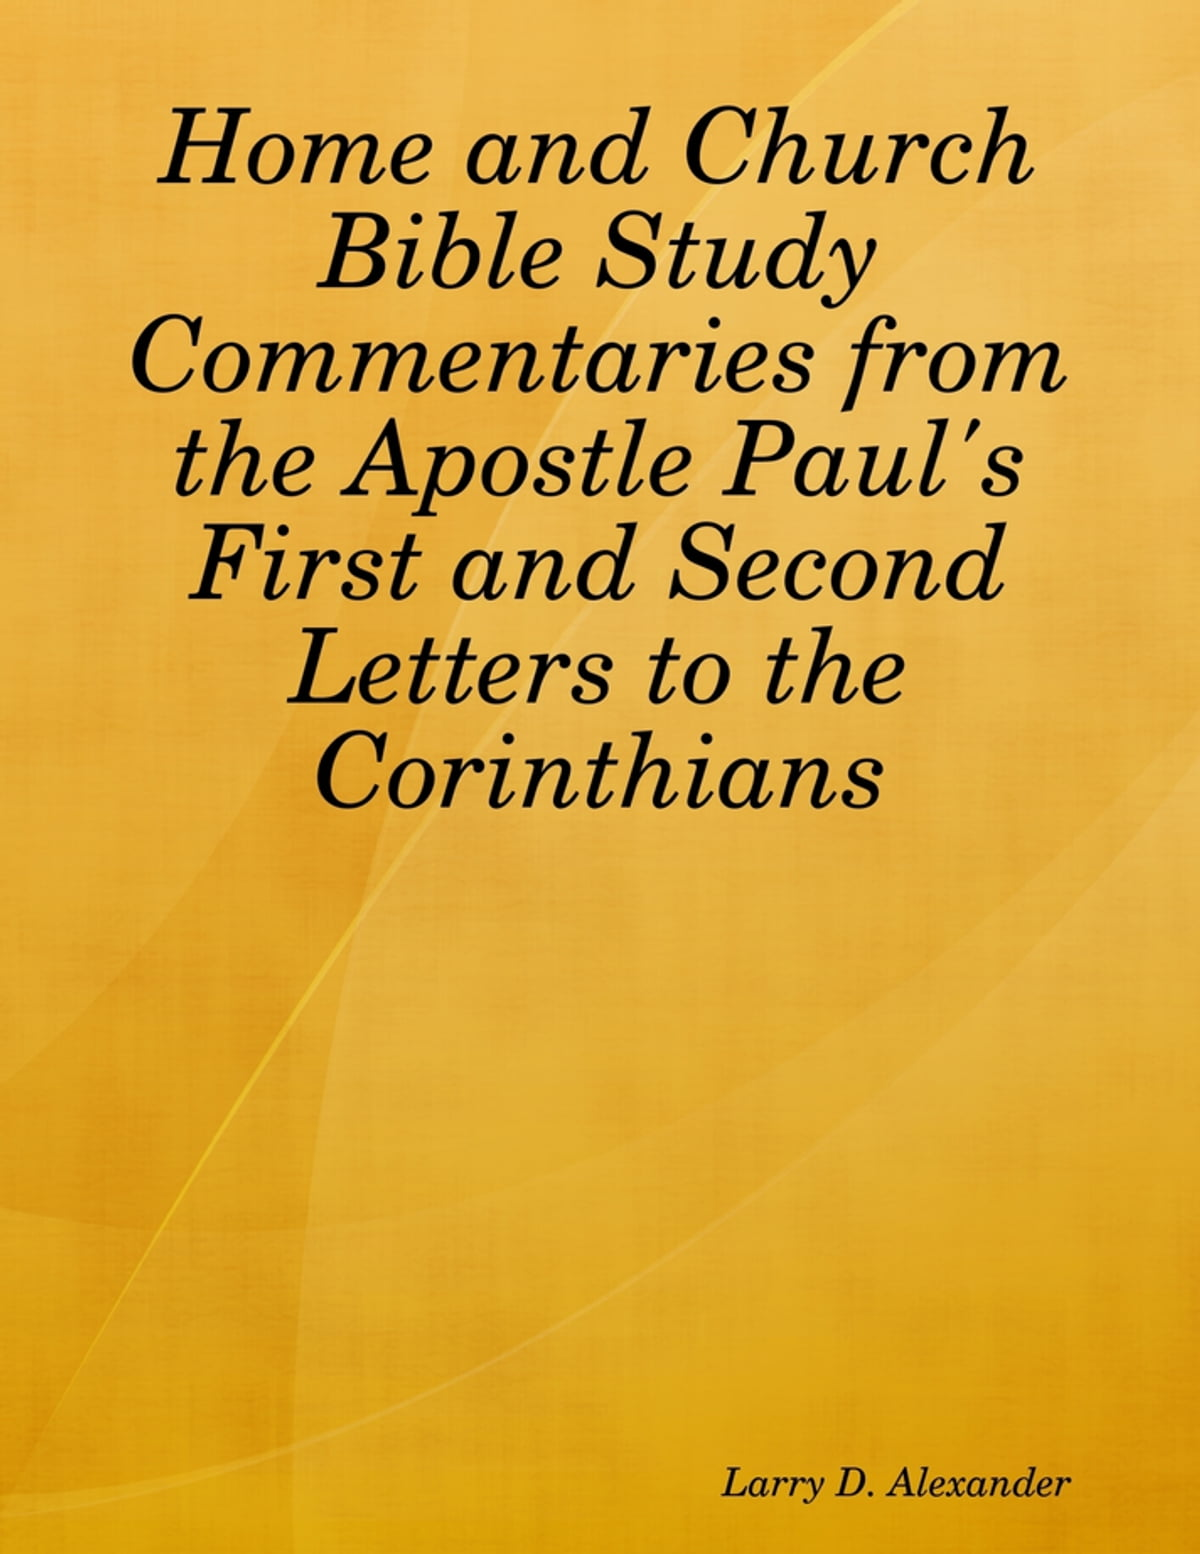 Home and Church Bible Study Commentaries from the Apostle Paul's